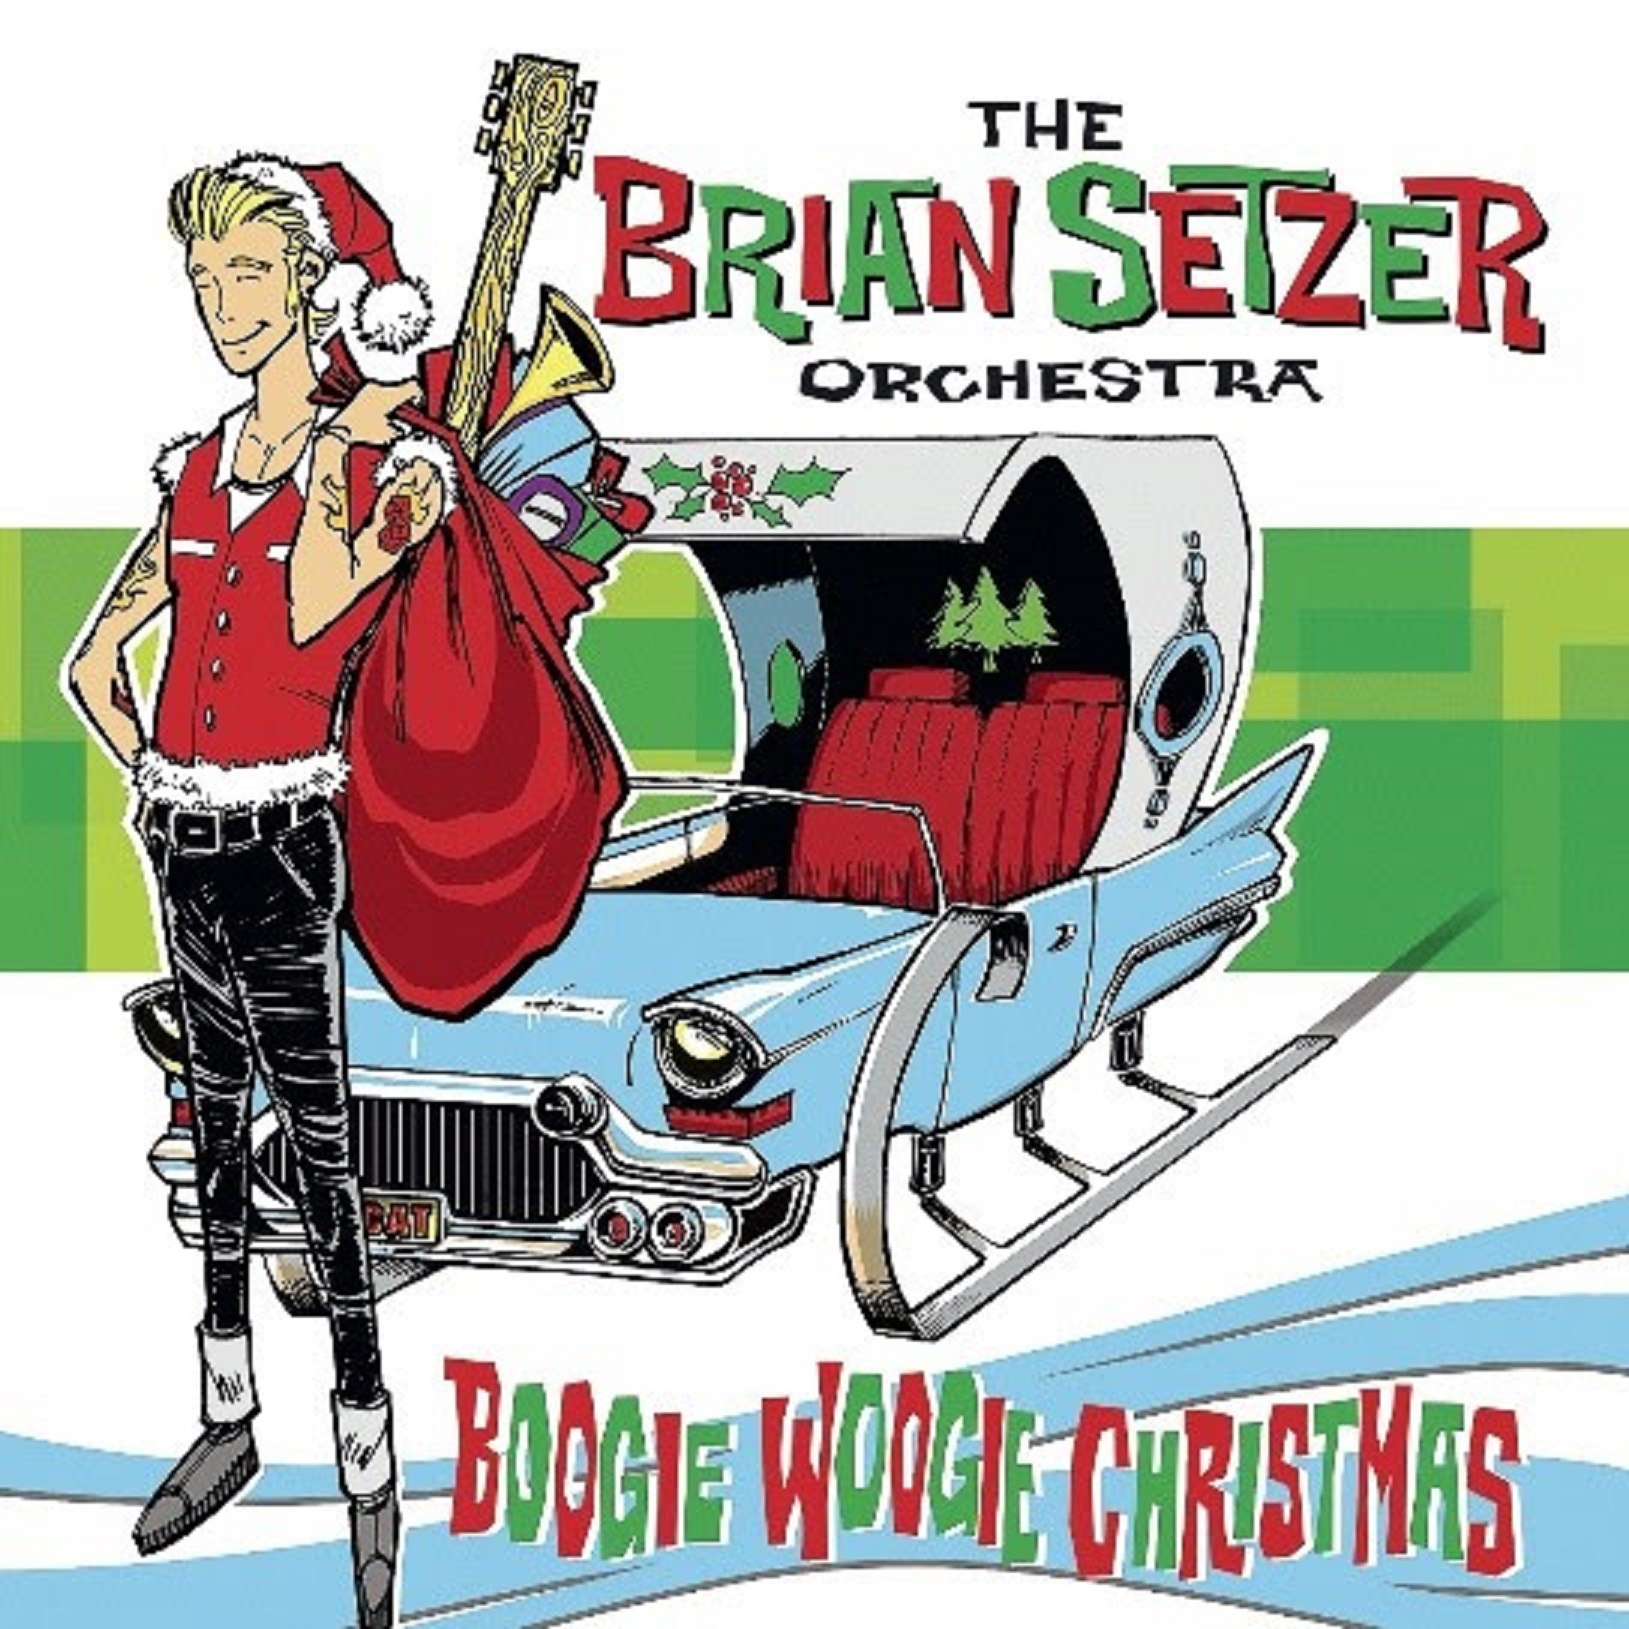 Christmas Albums Coming Out In 2019.Two Albums By The Brian Setzer Orchestra To Be Released